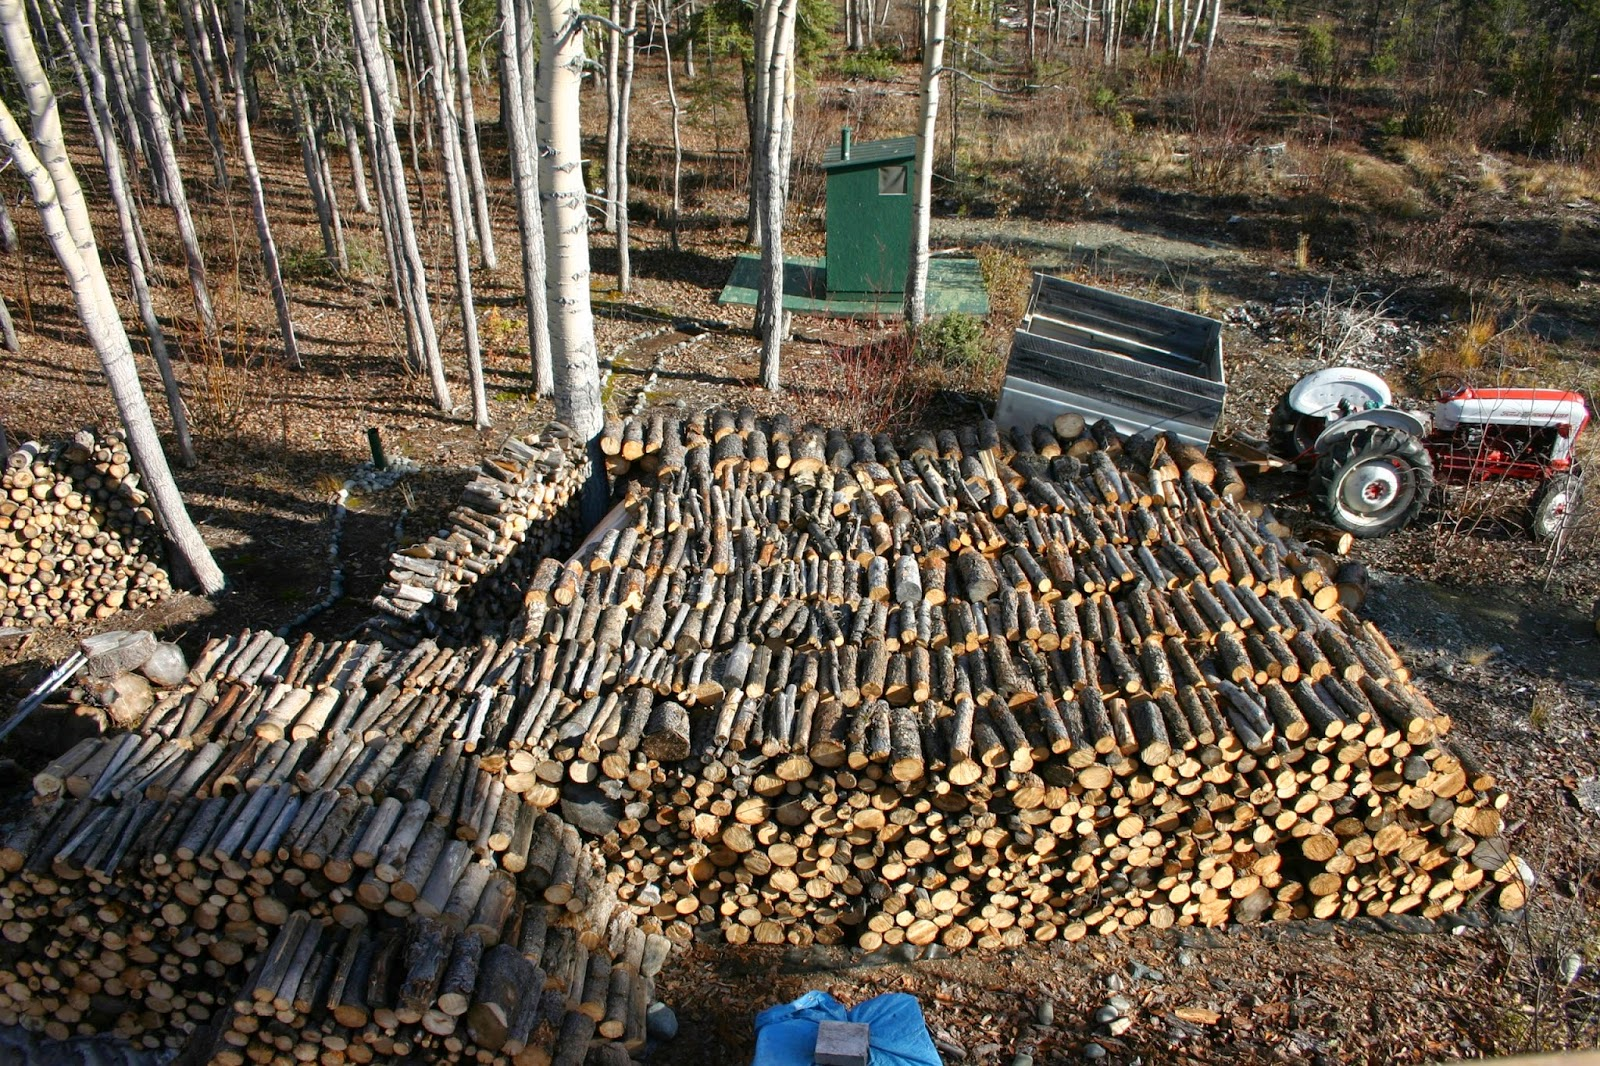 Wood gathering, with cords of firewood at Alaska homestead in Kenny Lake.